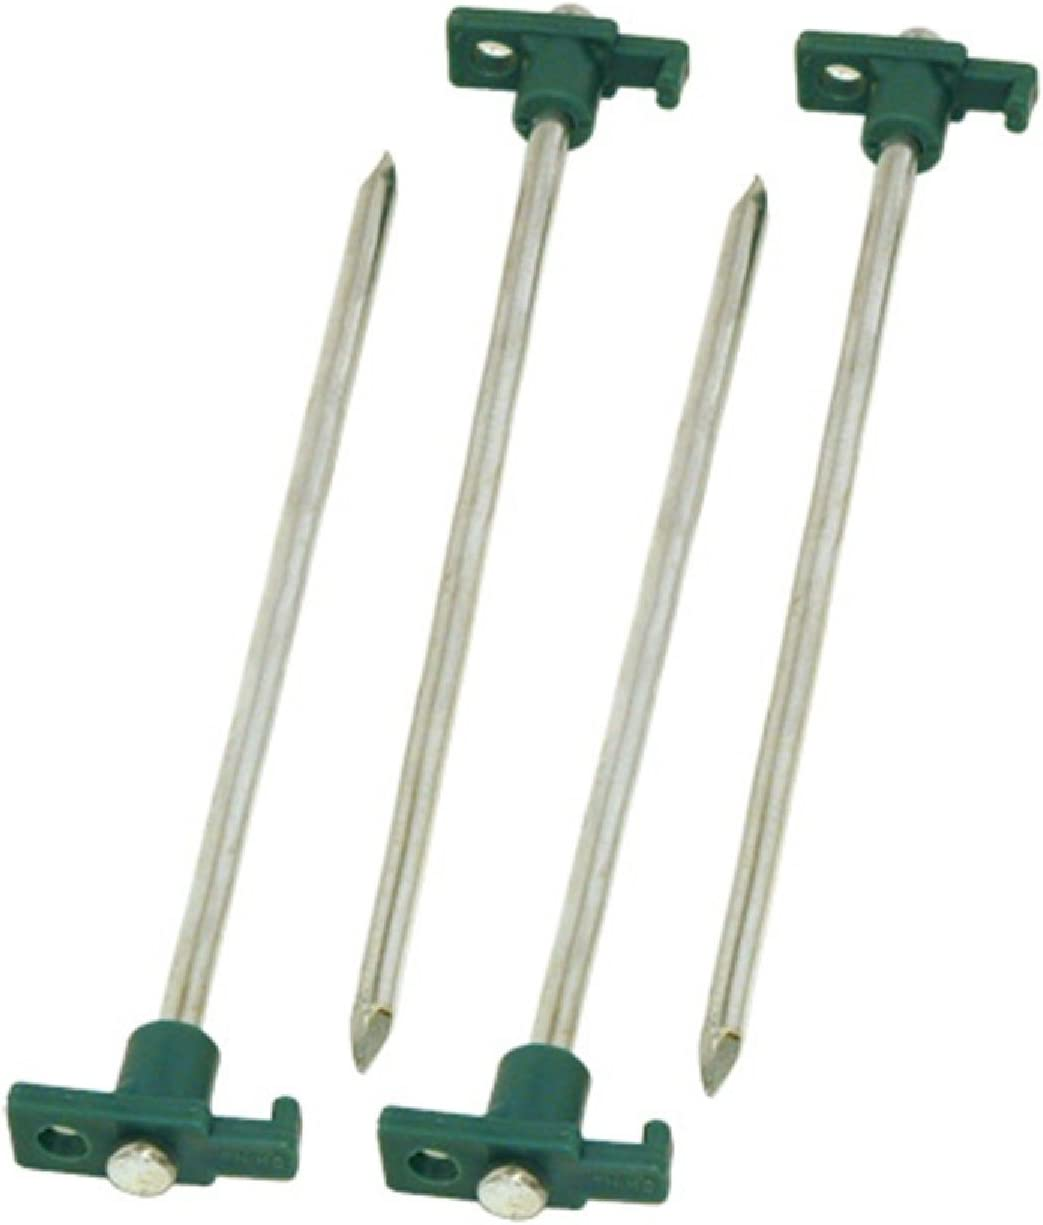 Coleman 10-In. Steel Nail Tent stakes